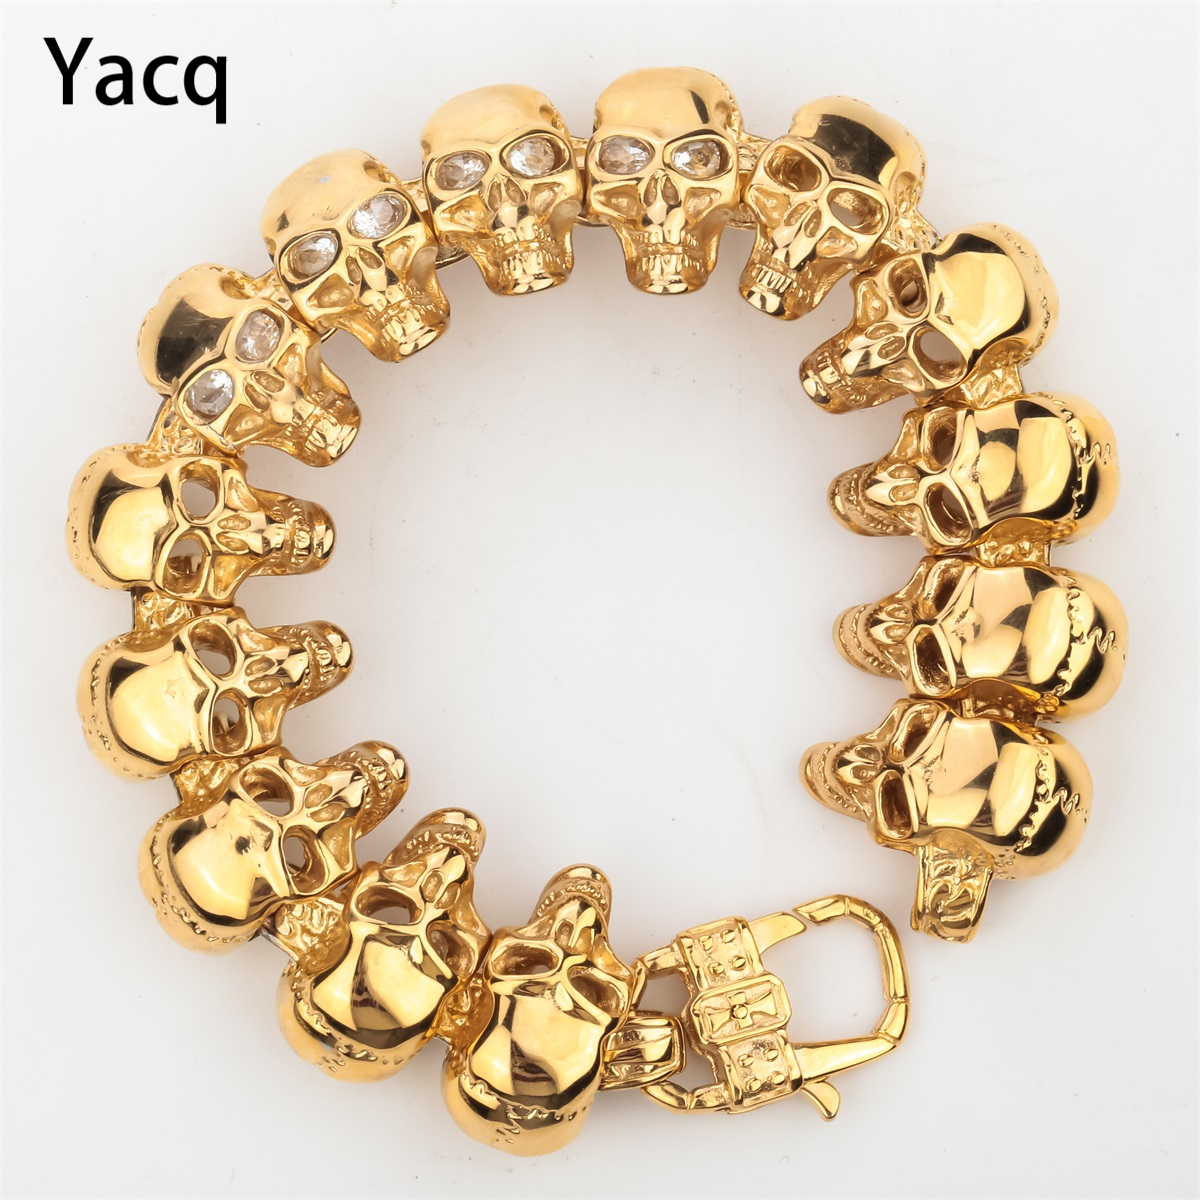 Skull Stainless Steel Bracelet Gold Color Mens Heavy Jewelry Fathers Day Gifts for Dad Boyfriend Him dropshipping 8.5 D101